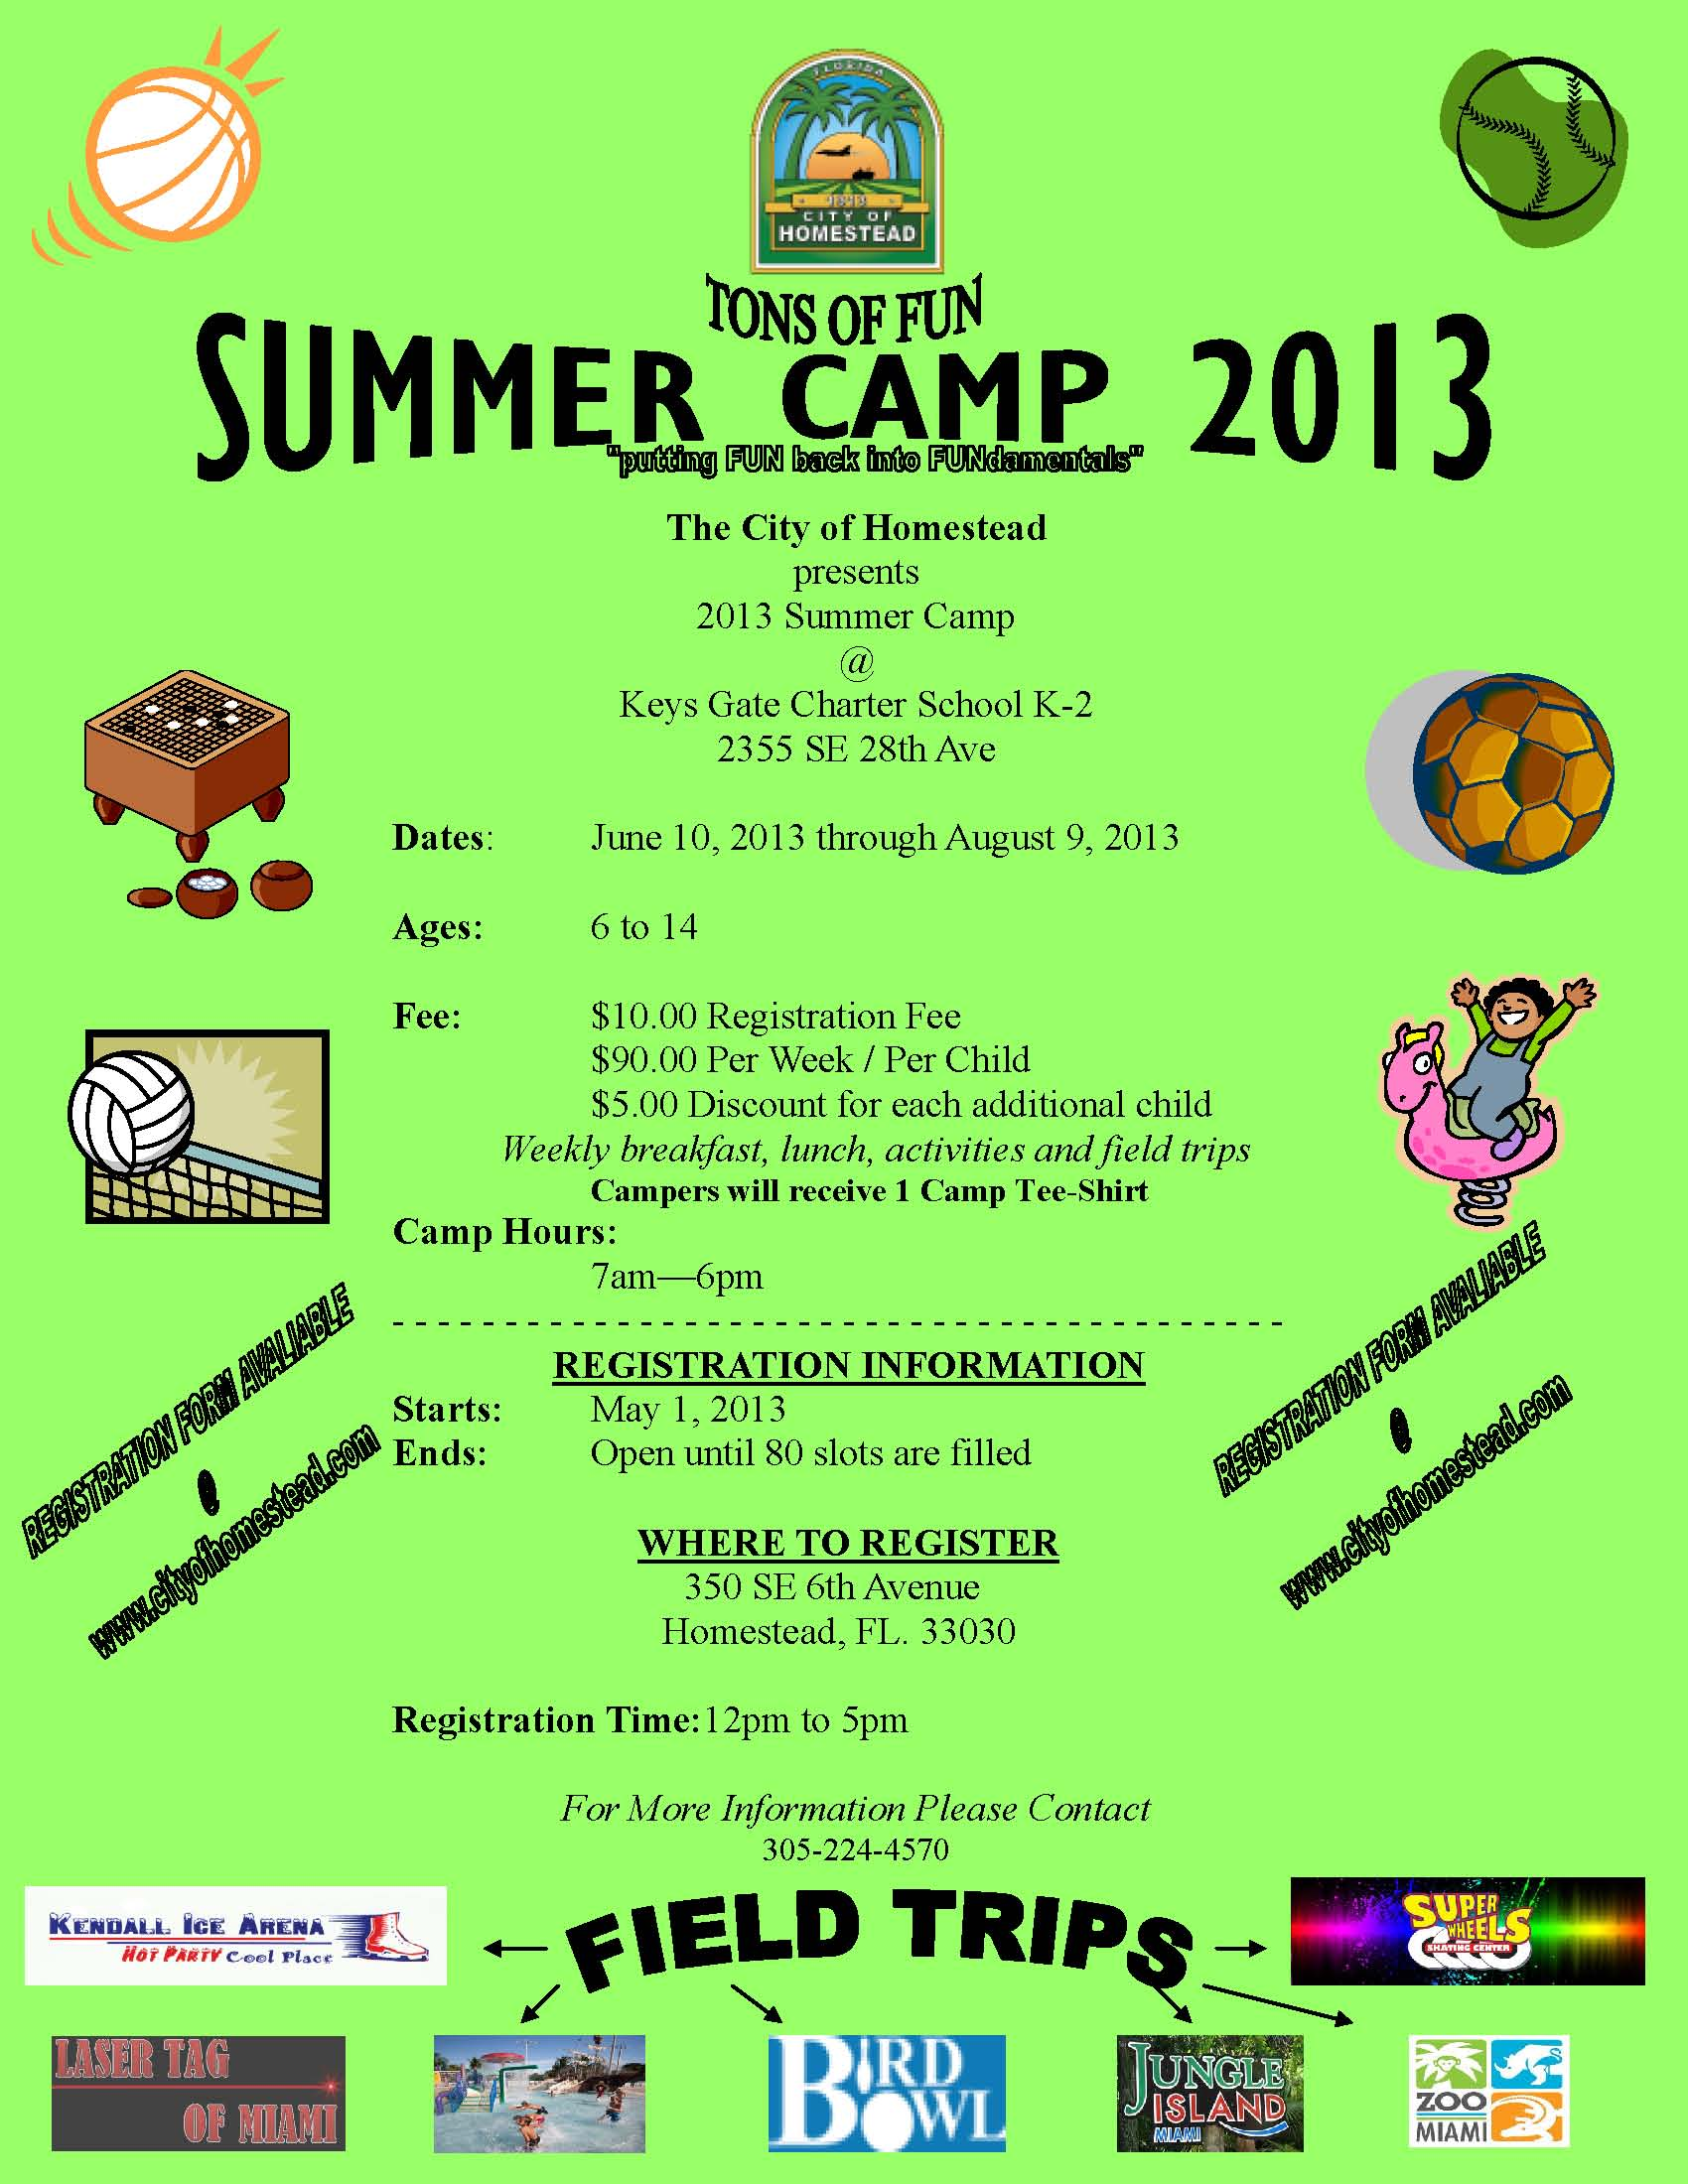 City of Homestead Summer Camp 2013